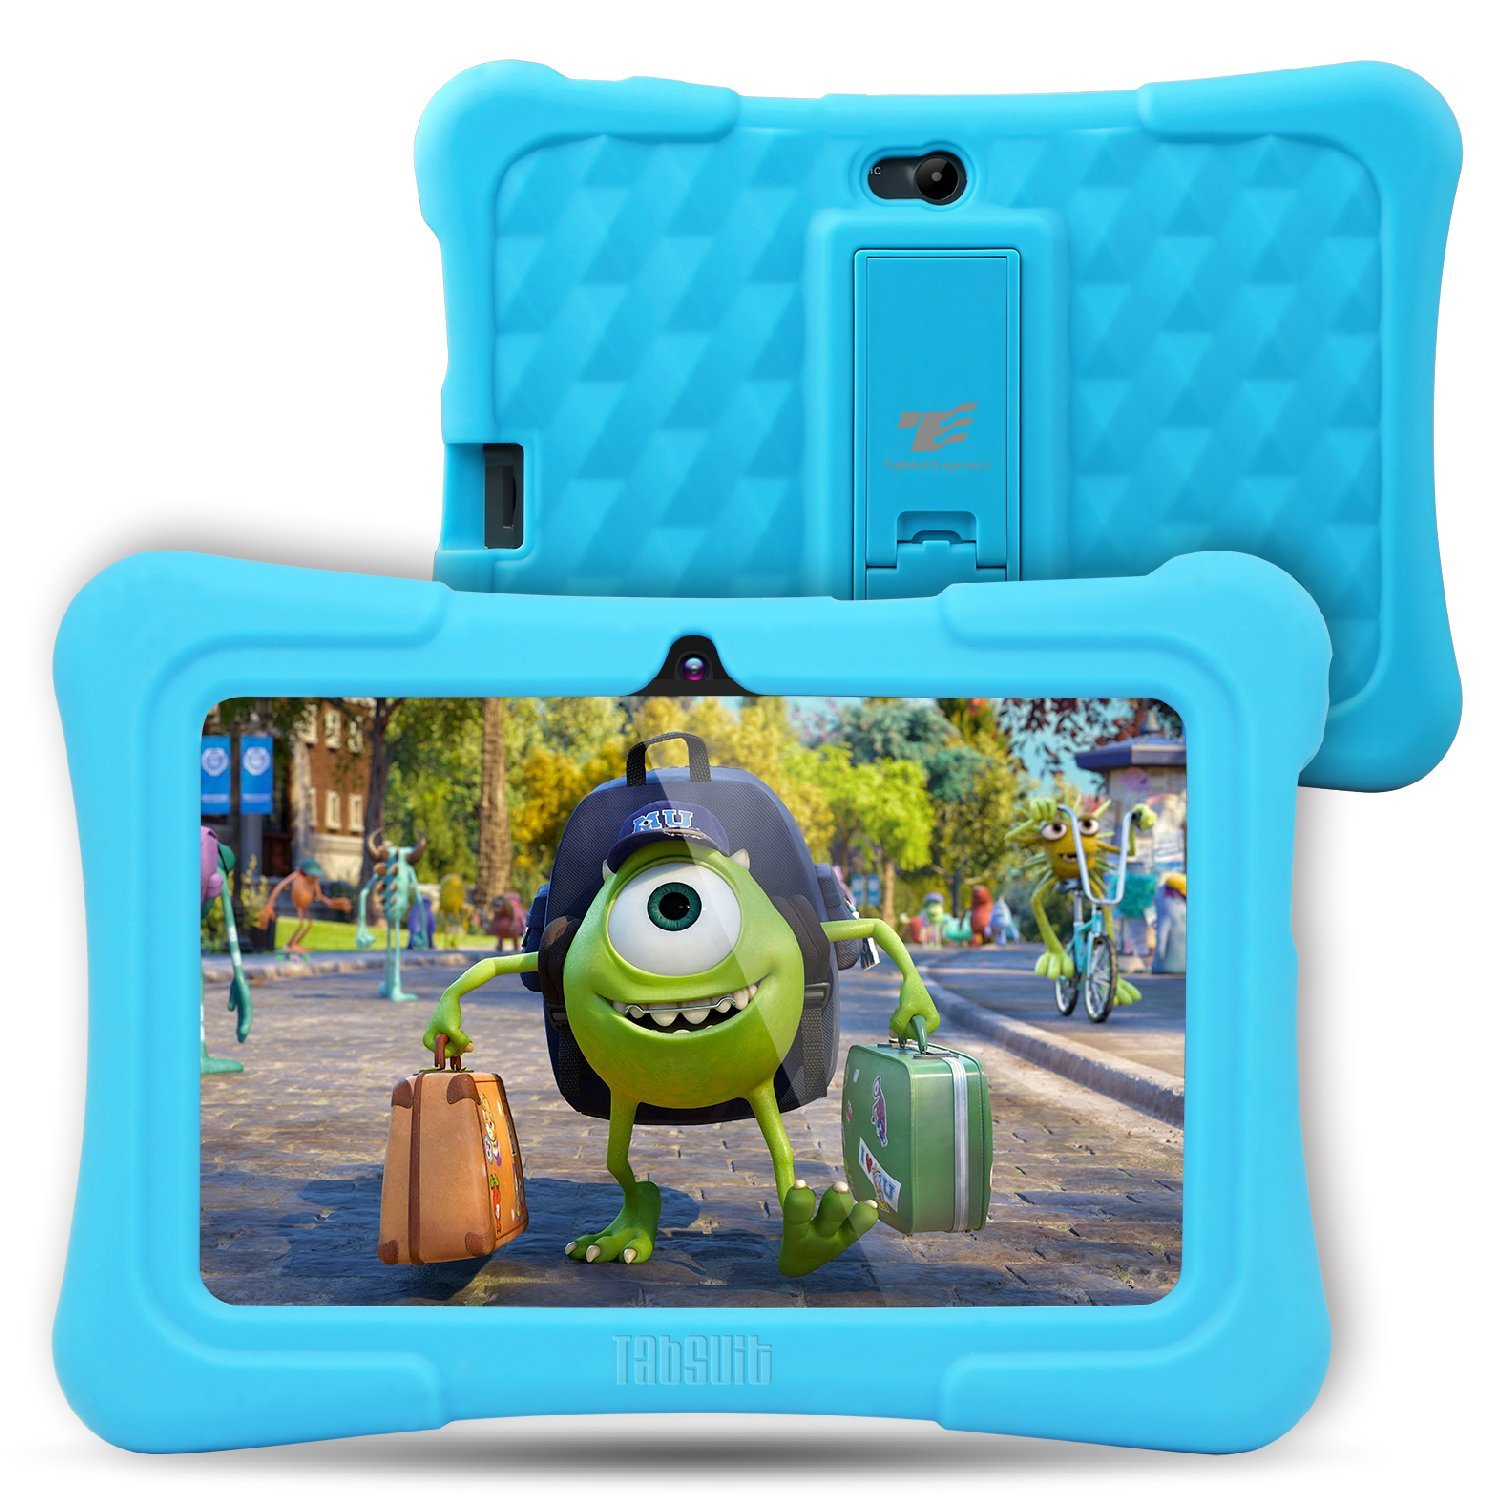 DragonTouch Y88X Plus 7 inch Kids Tablet pcs Quad Core Android 5.1 Lollipop IPS Display Kidoz Pre-Installed Best Christmas gift 100 pcs ld 3361ag 3 digit 0 36 green 7 segment led display common cathode